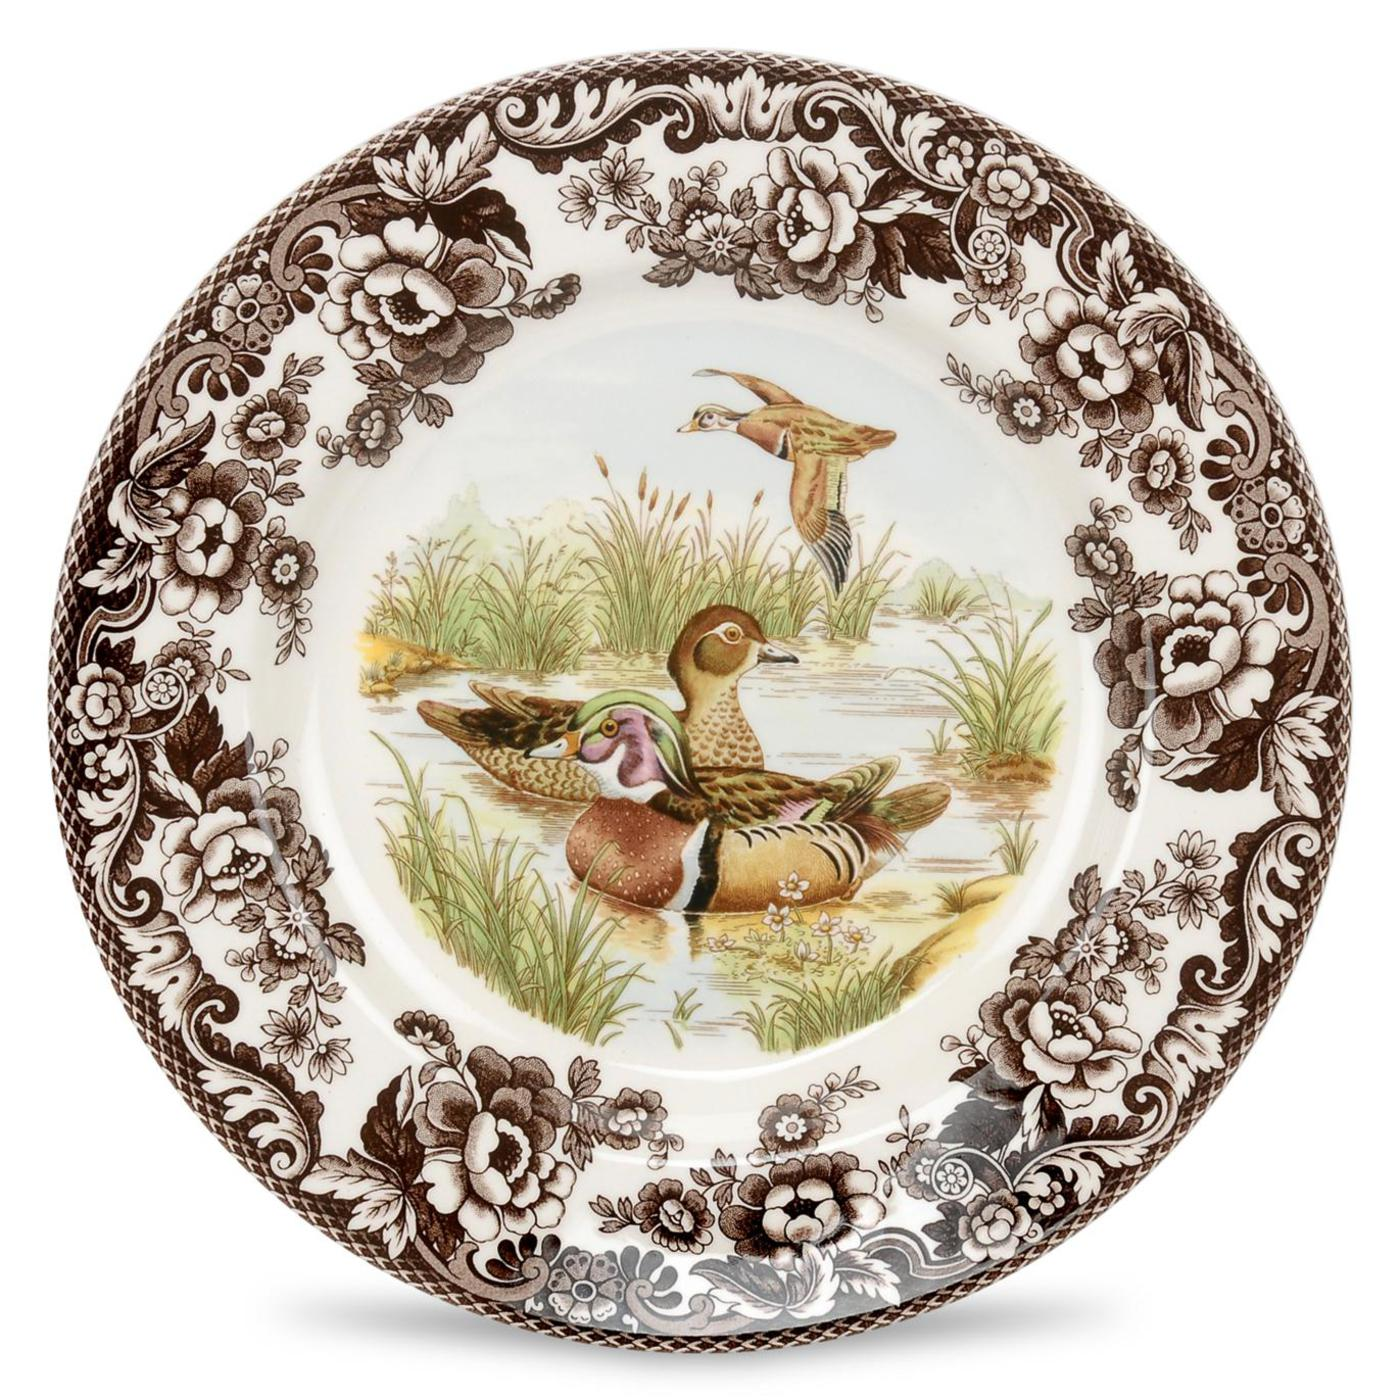 Spode Woodland Salad Plate 8 Inch (Wood Duck) image number 0